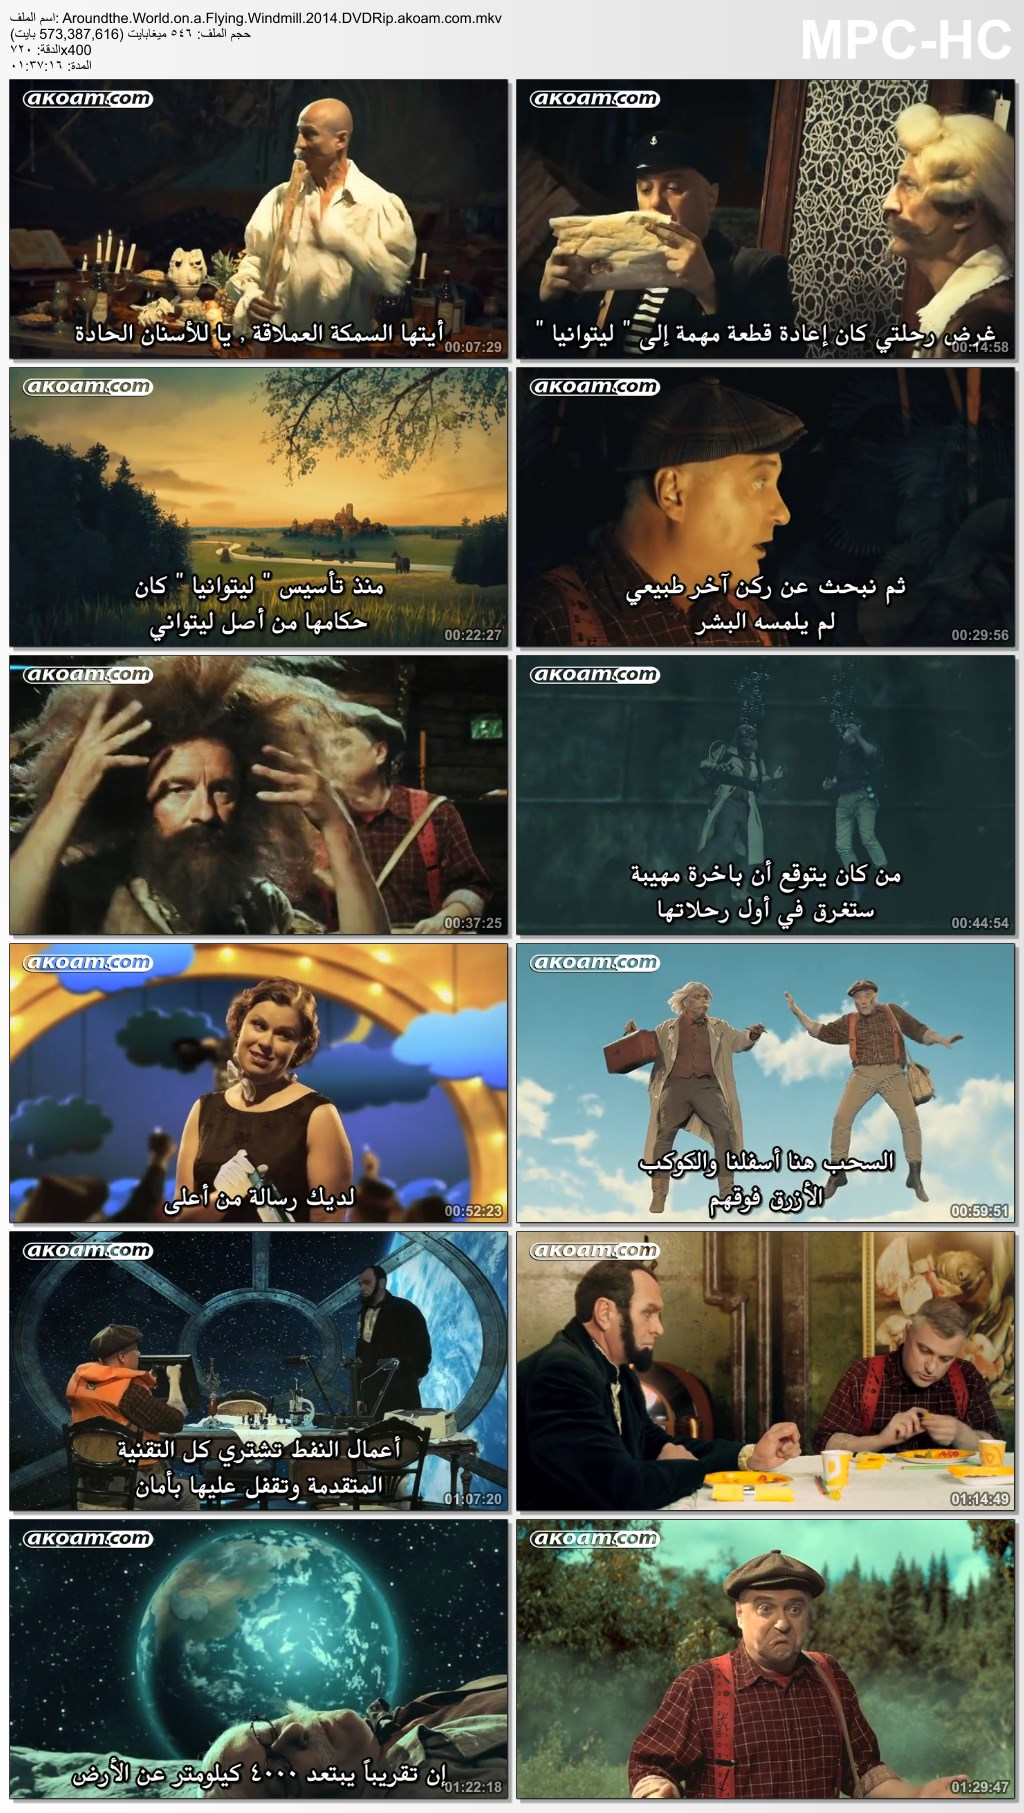 المغامرة,العائلي,Around the World on a Flying Windmill